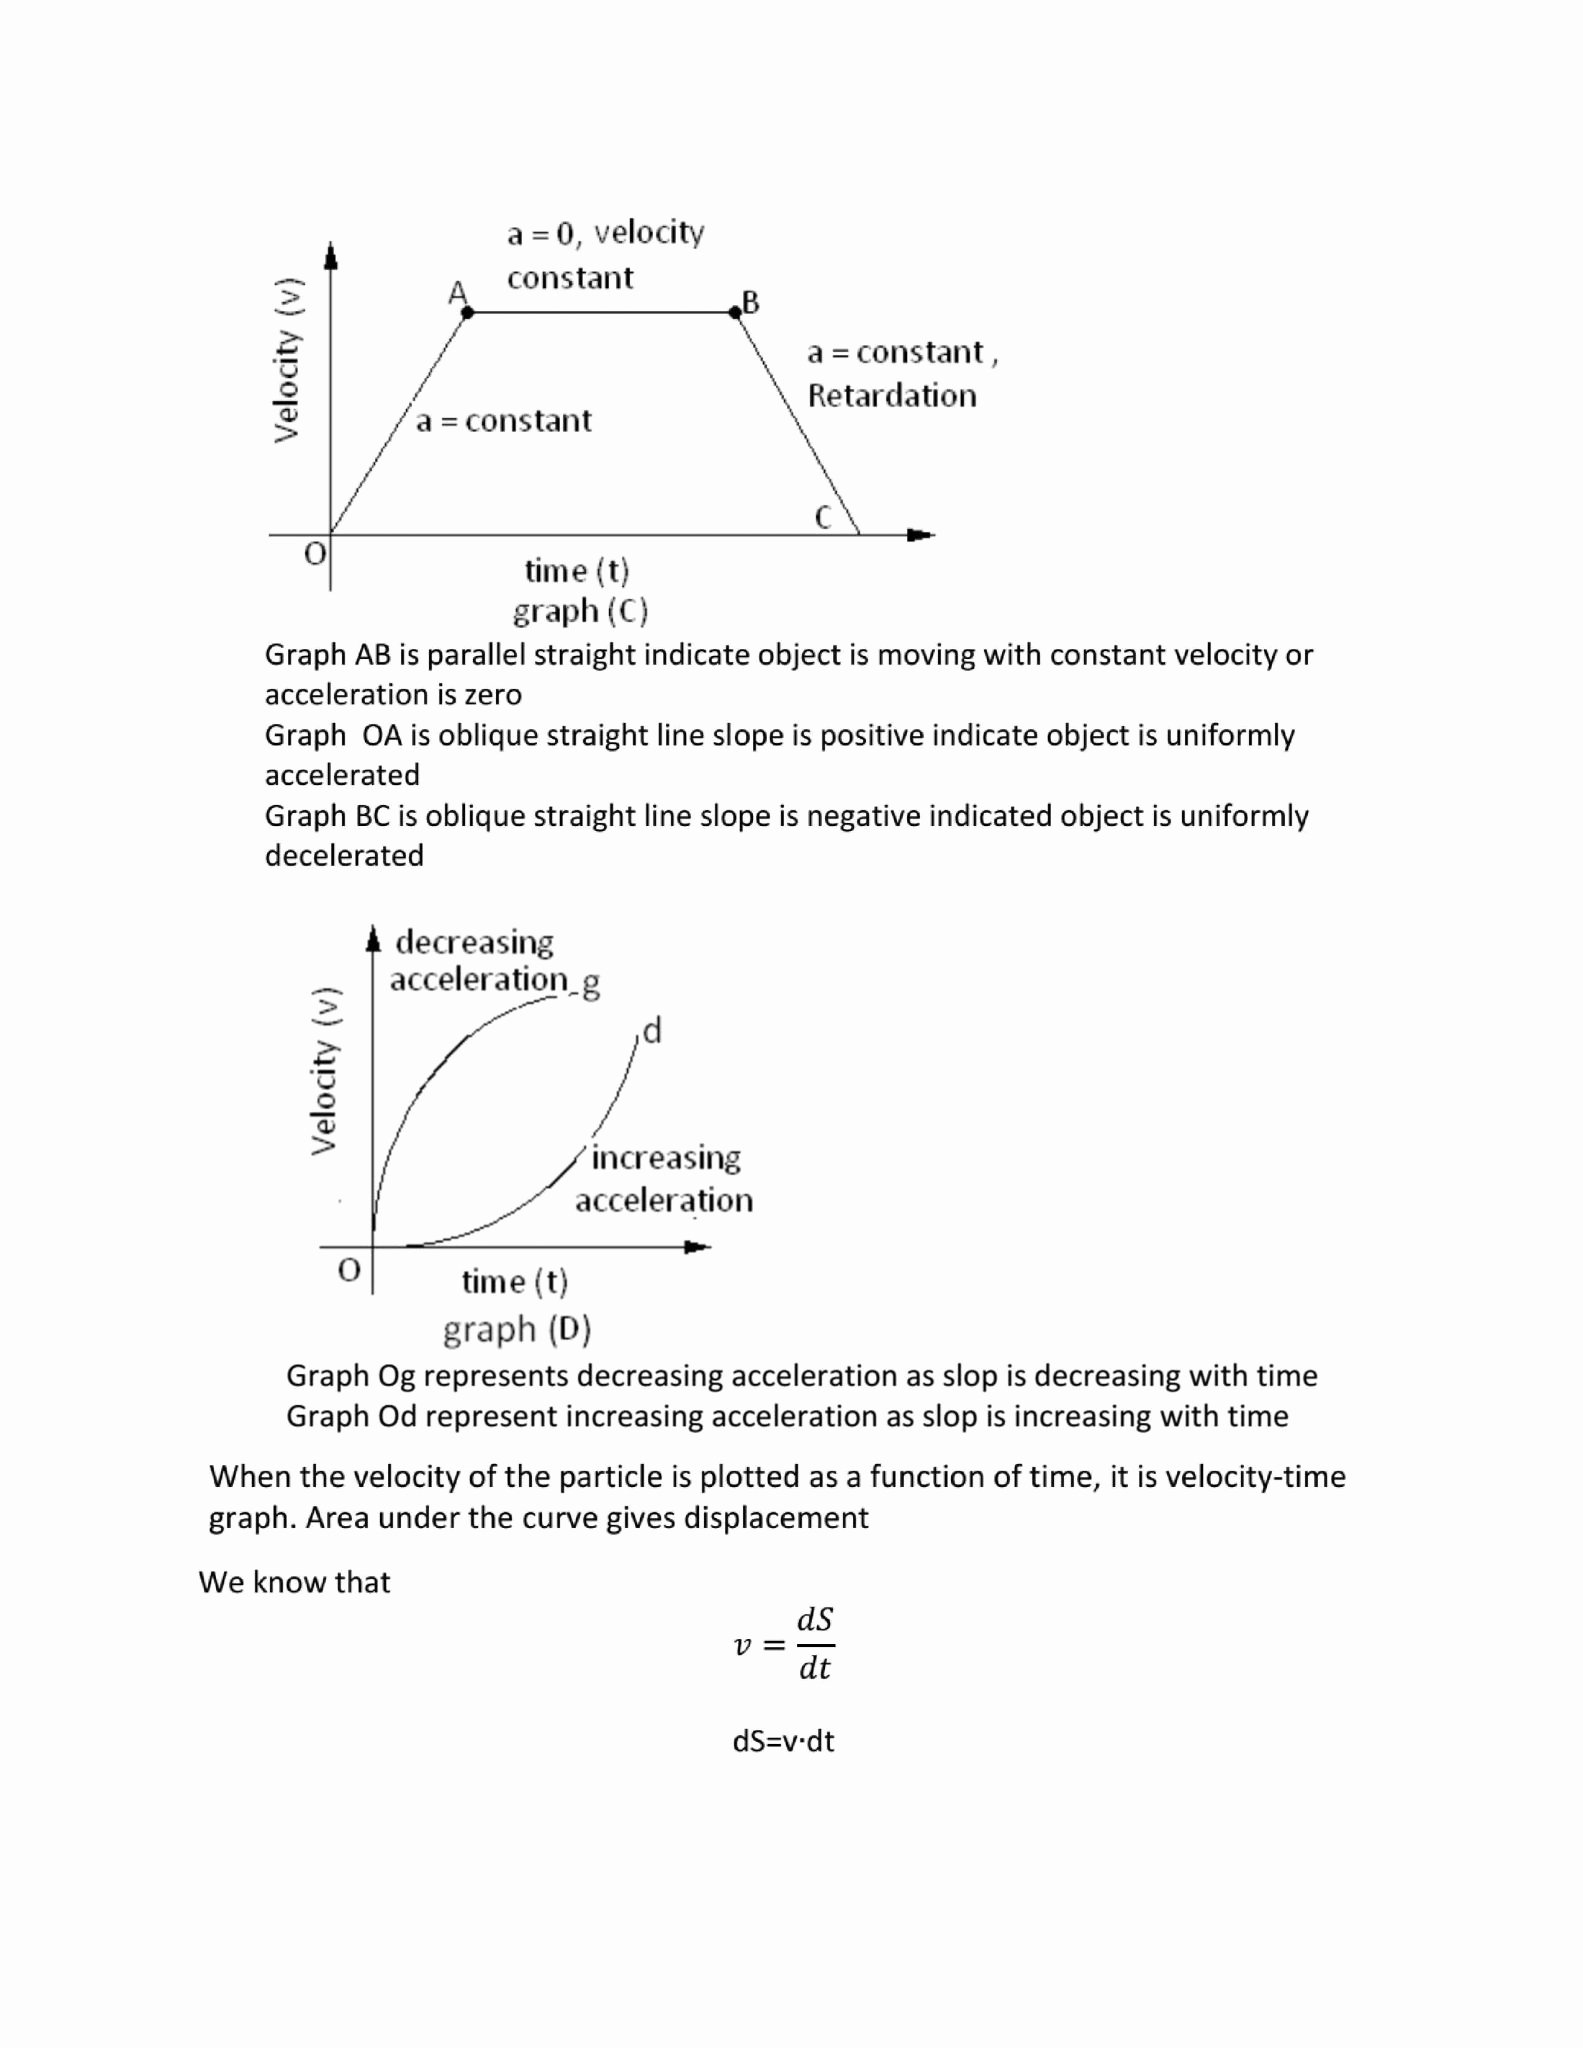 Velocity Time Graph Worksheet Answers Best Of Displacement Velocity and Acceleration Worksheet Answers